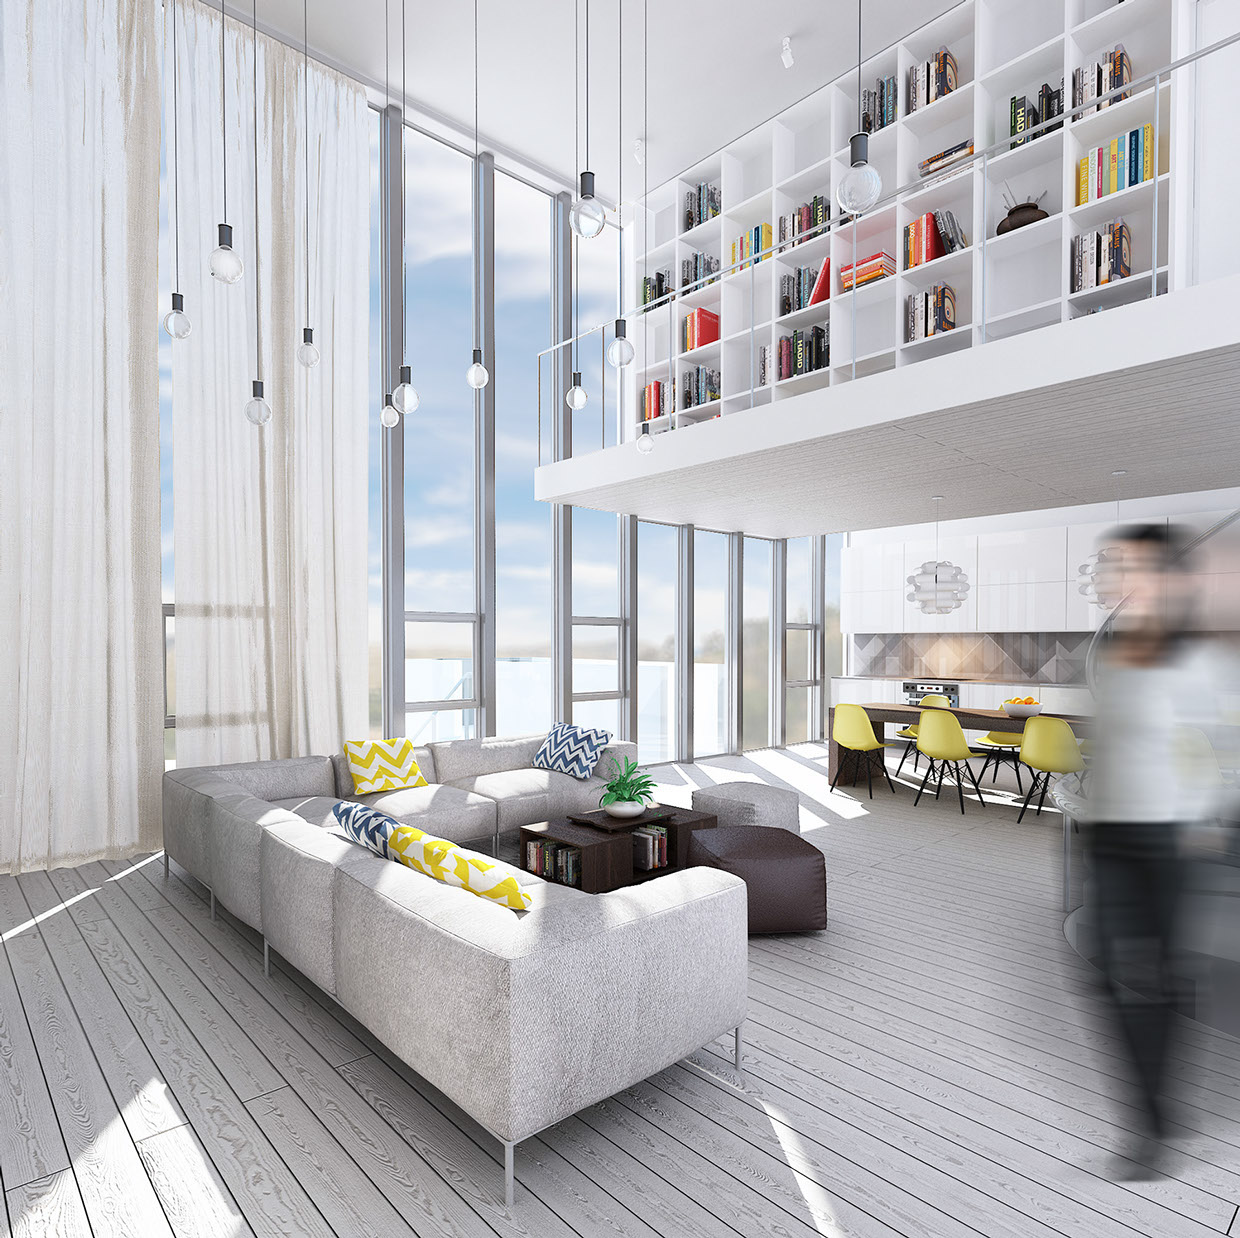 Designer Interior: Wondrous White: Three Lofts With Clean, Bright Interiors